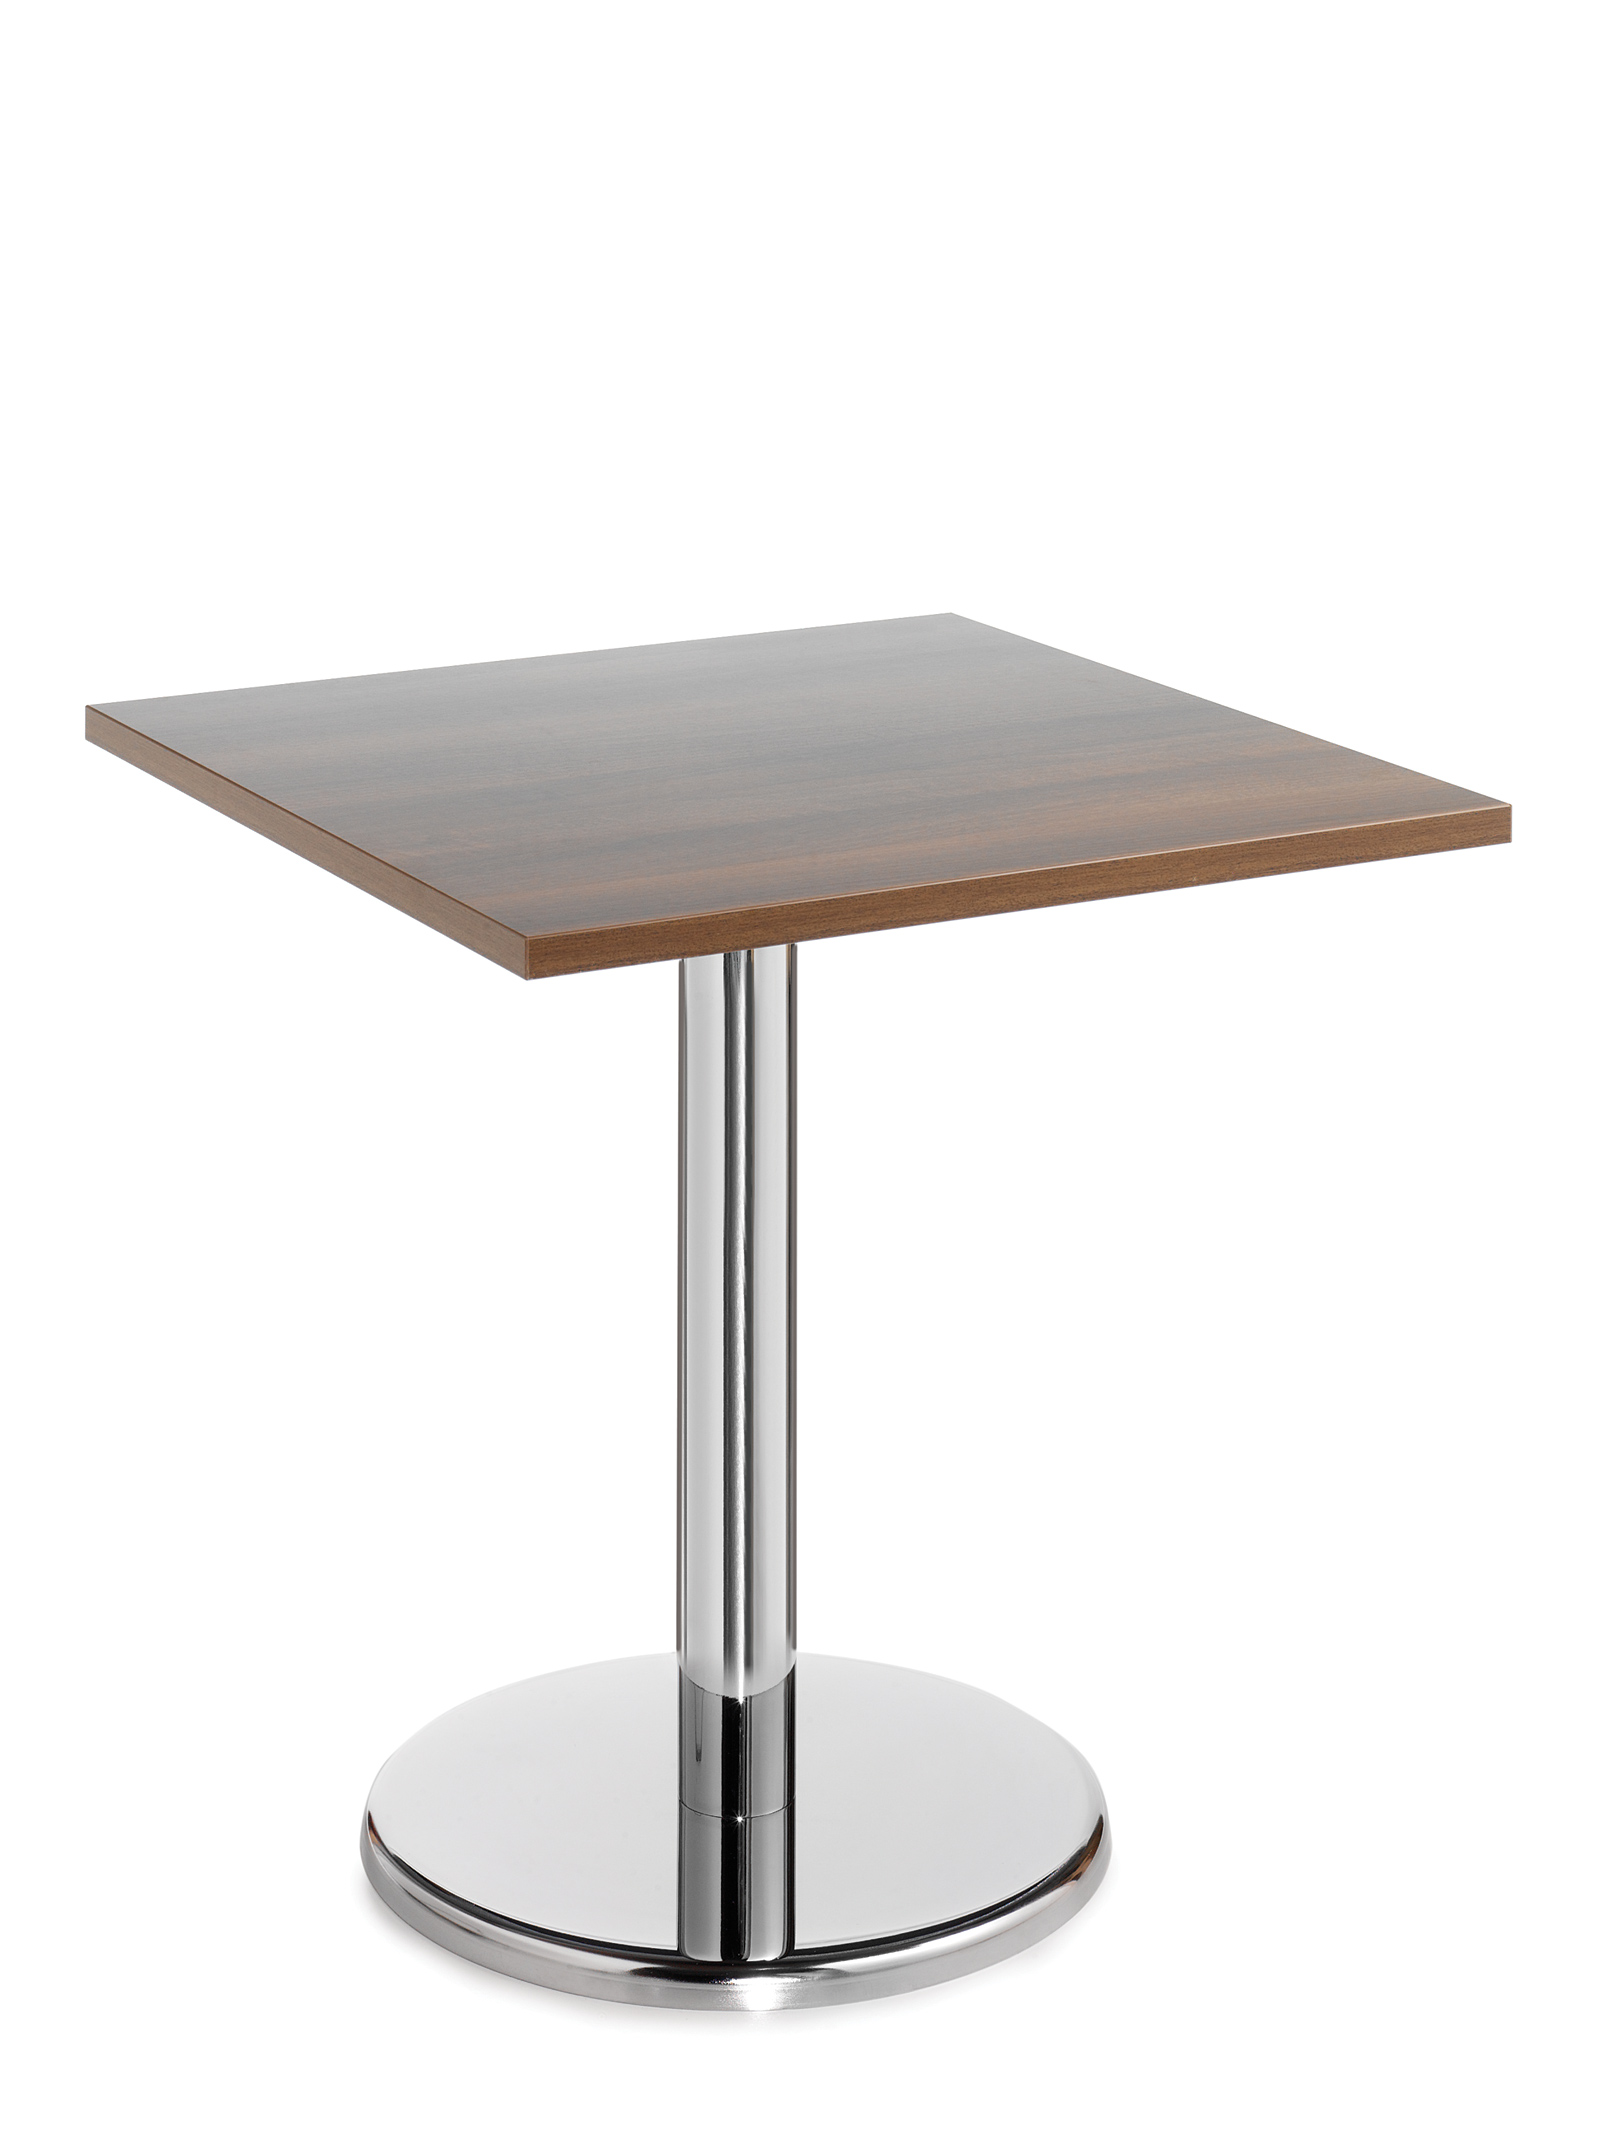 Pisa square table with round chrome base 700mm - walnut